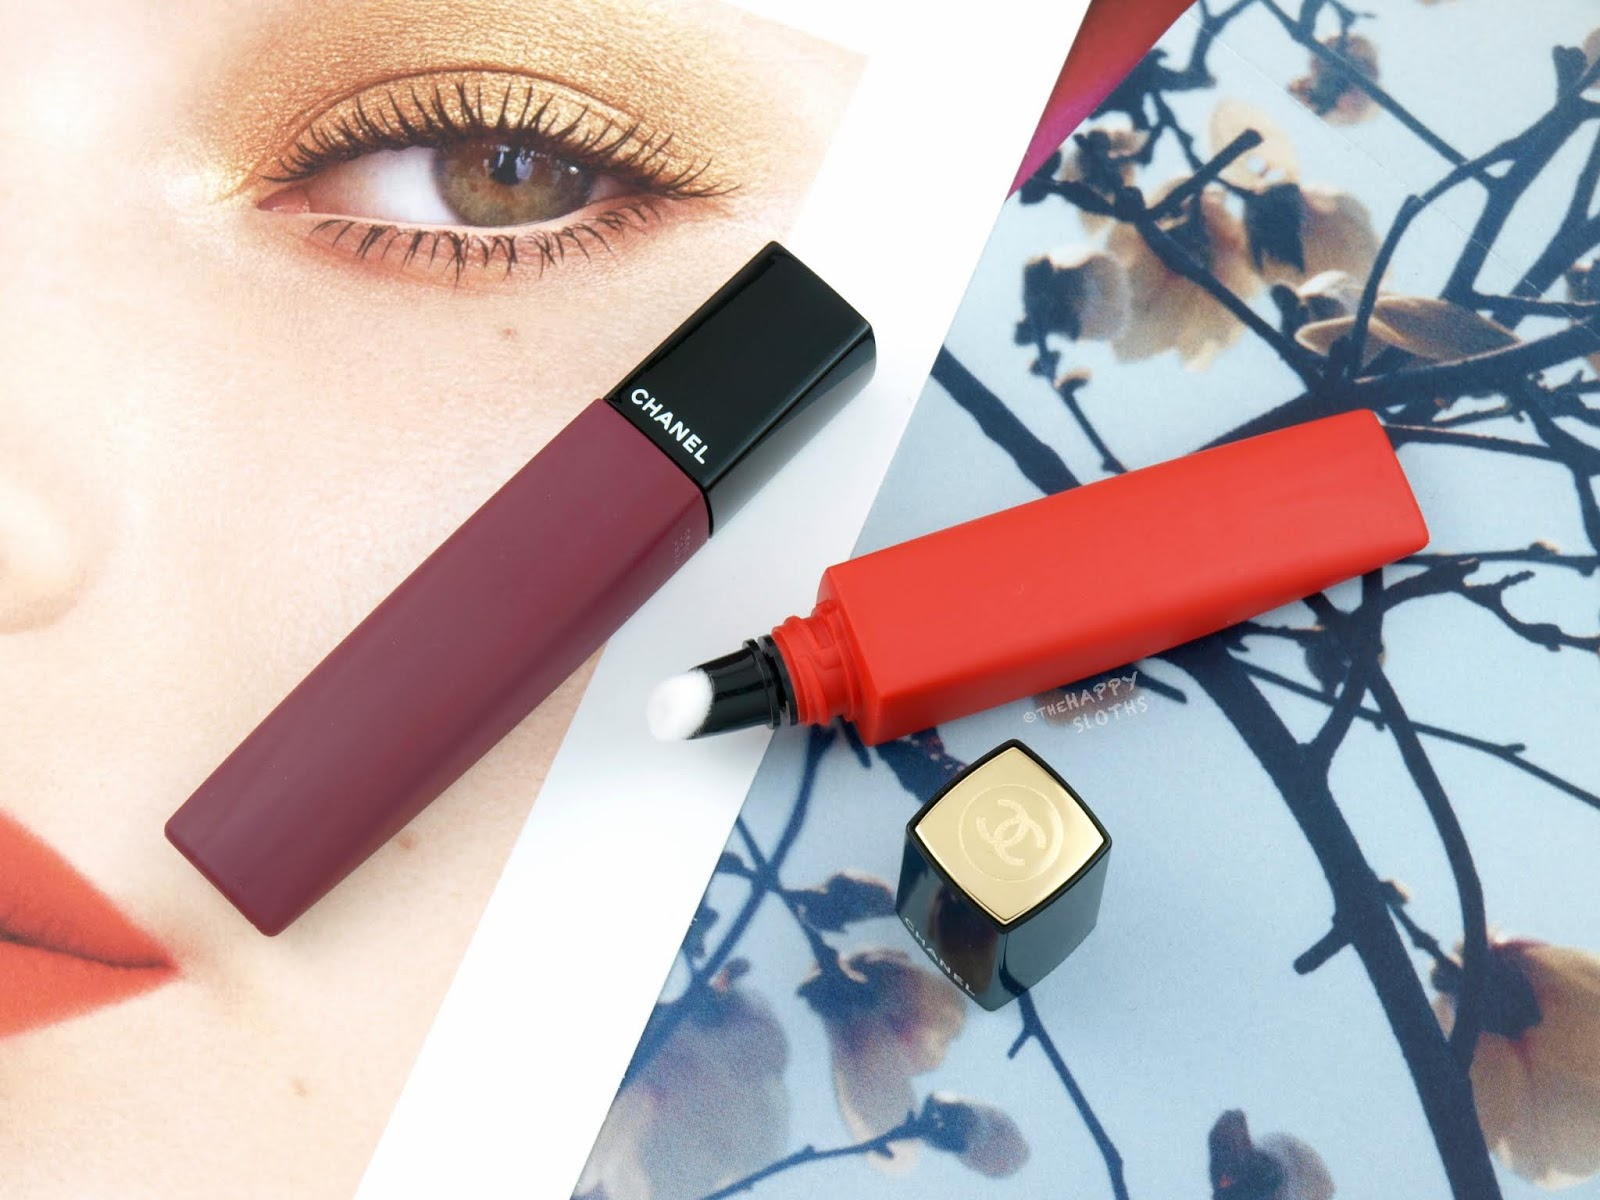 Chanel Spring-Summer 2018 | Rouge Allure Liquid Powder: Review and Swatches